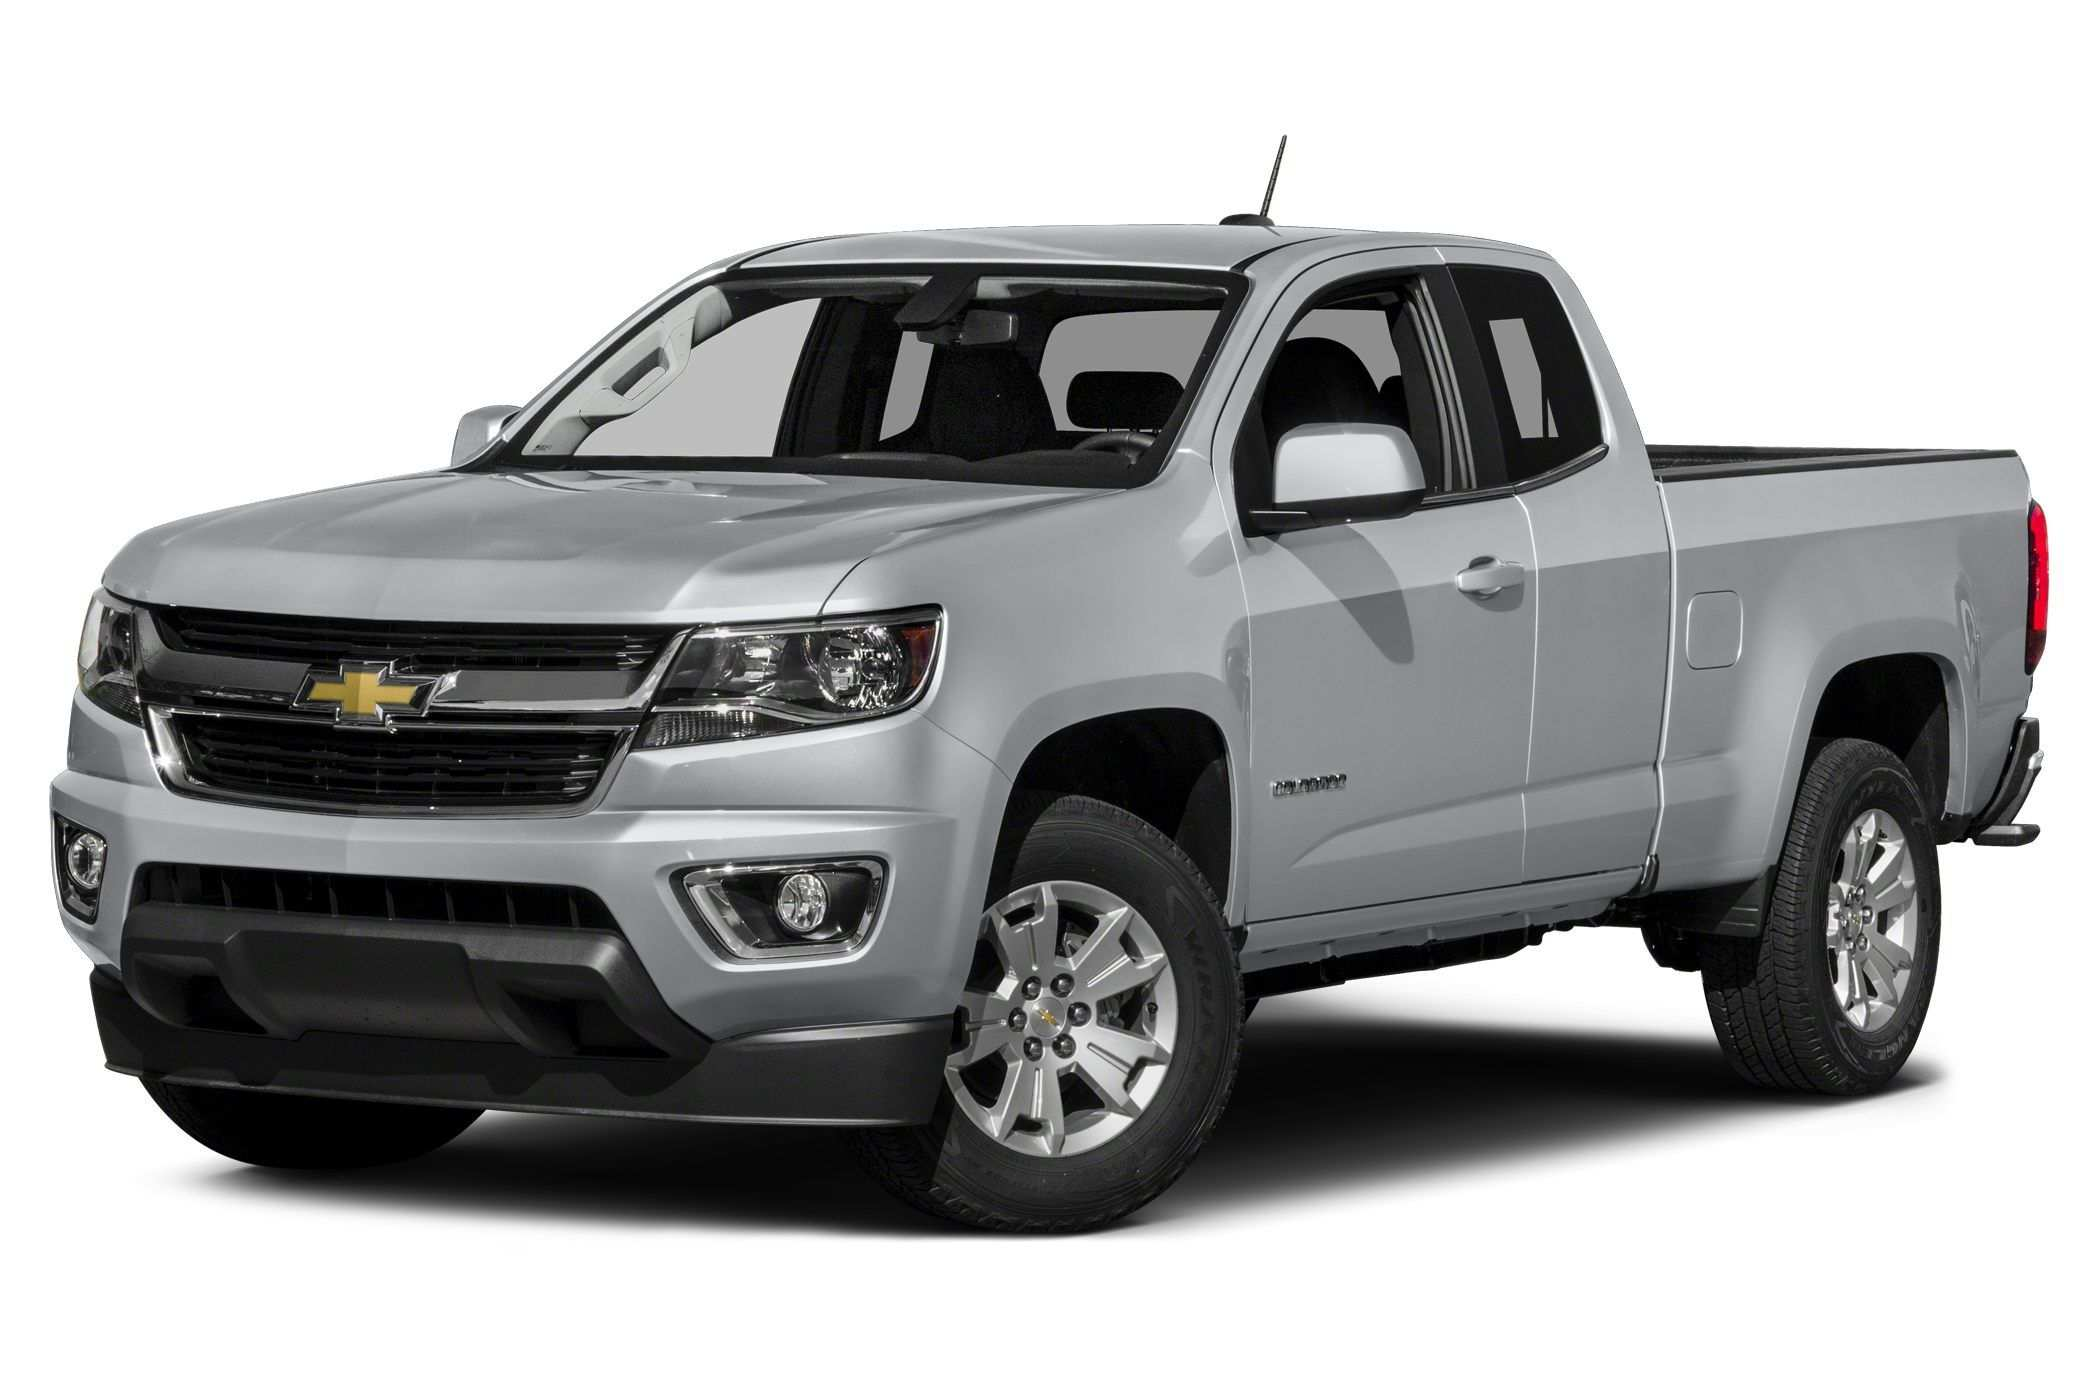 95 A 2019 Chevy Colorado Going Launched Soon Spesification